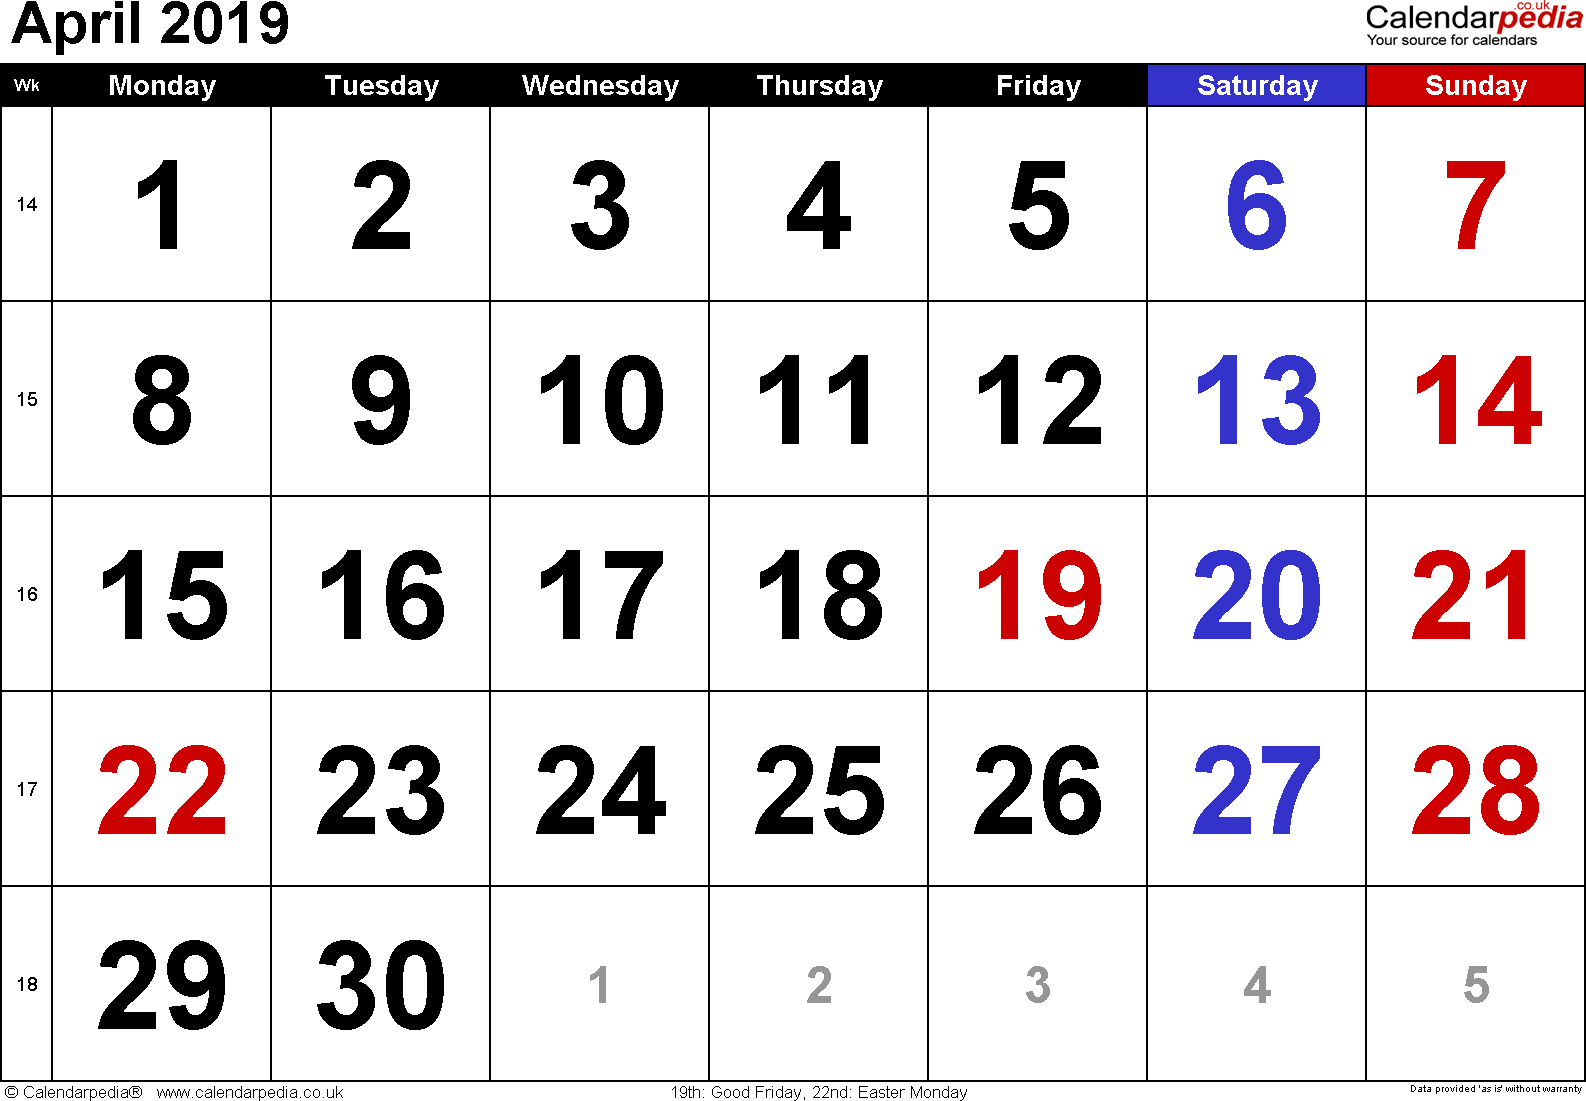 Calendar April 2019, landscape orientation, large numerals, 1 page, with UK bank holidays and week numbers